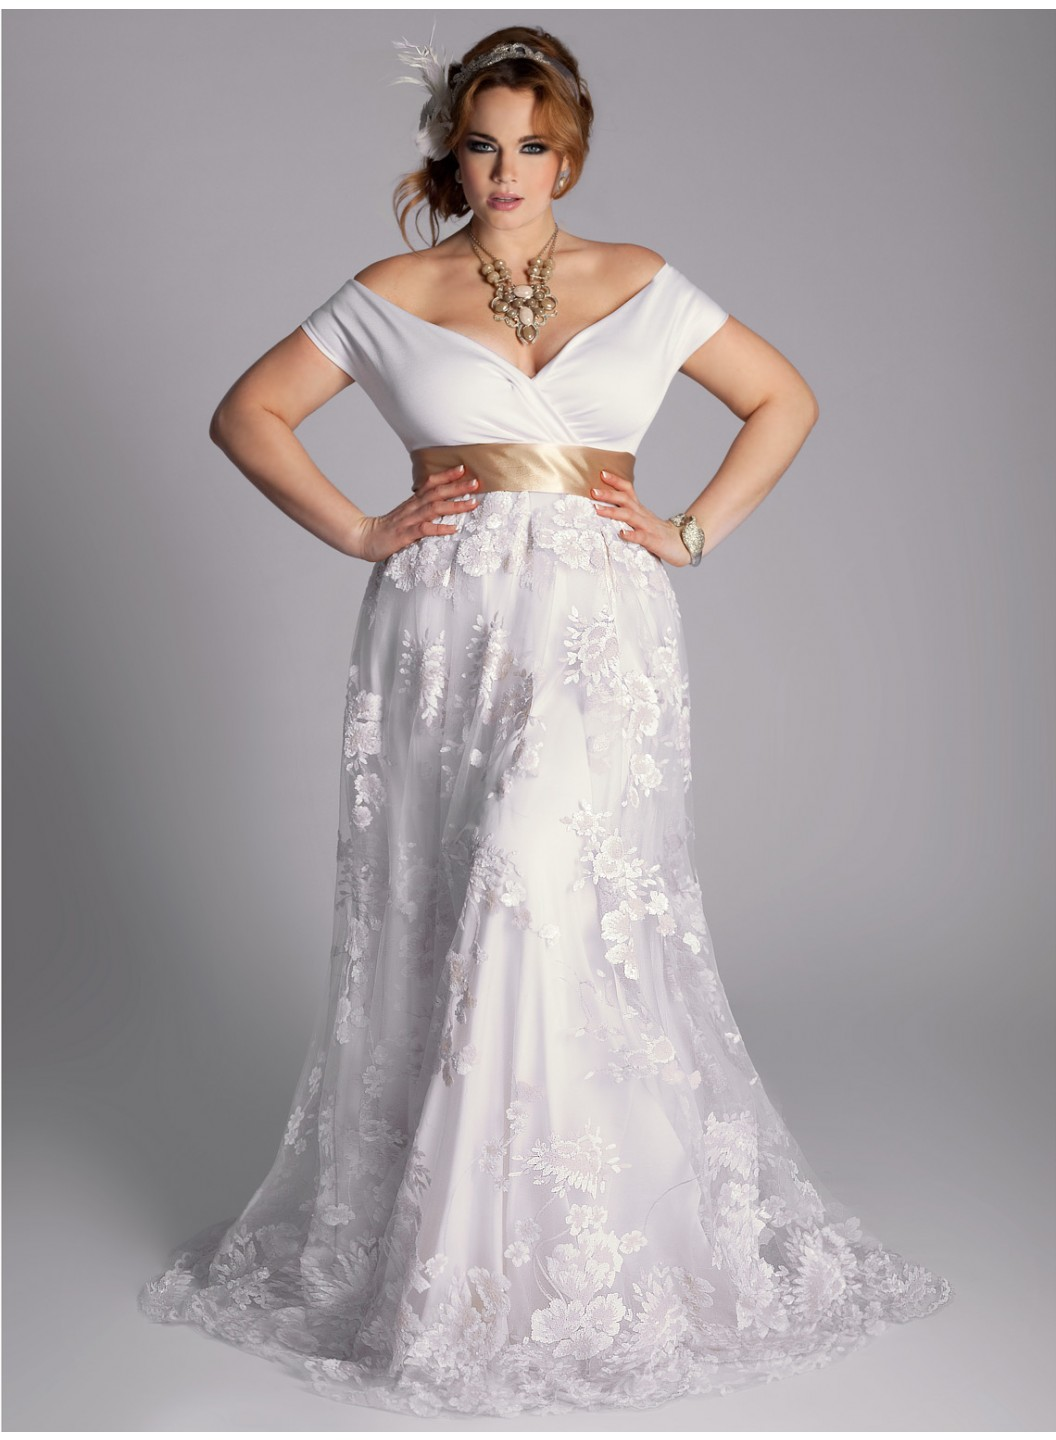 25 Stunning Plus-Size Wedding Dresses For Every Style Of ...